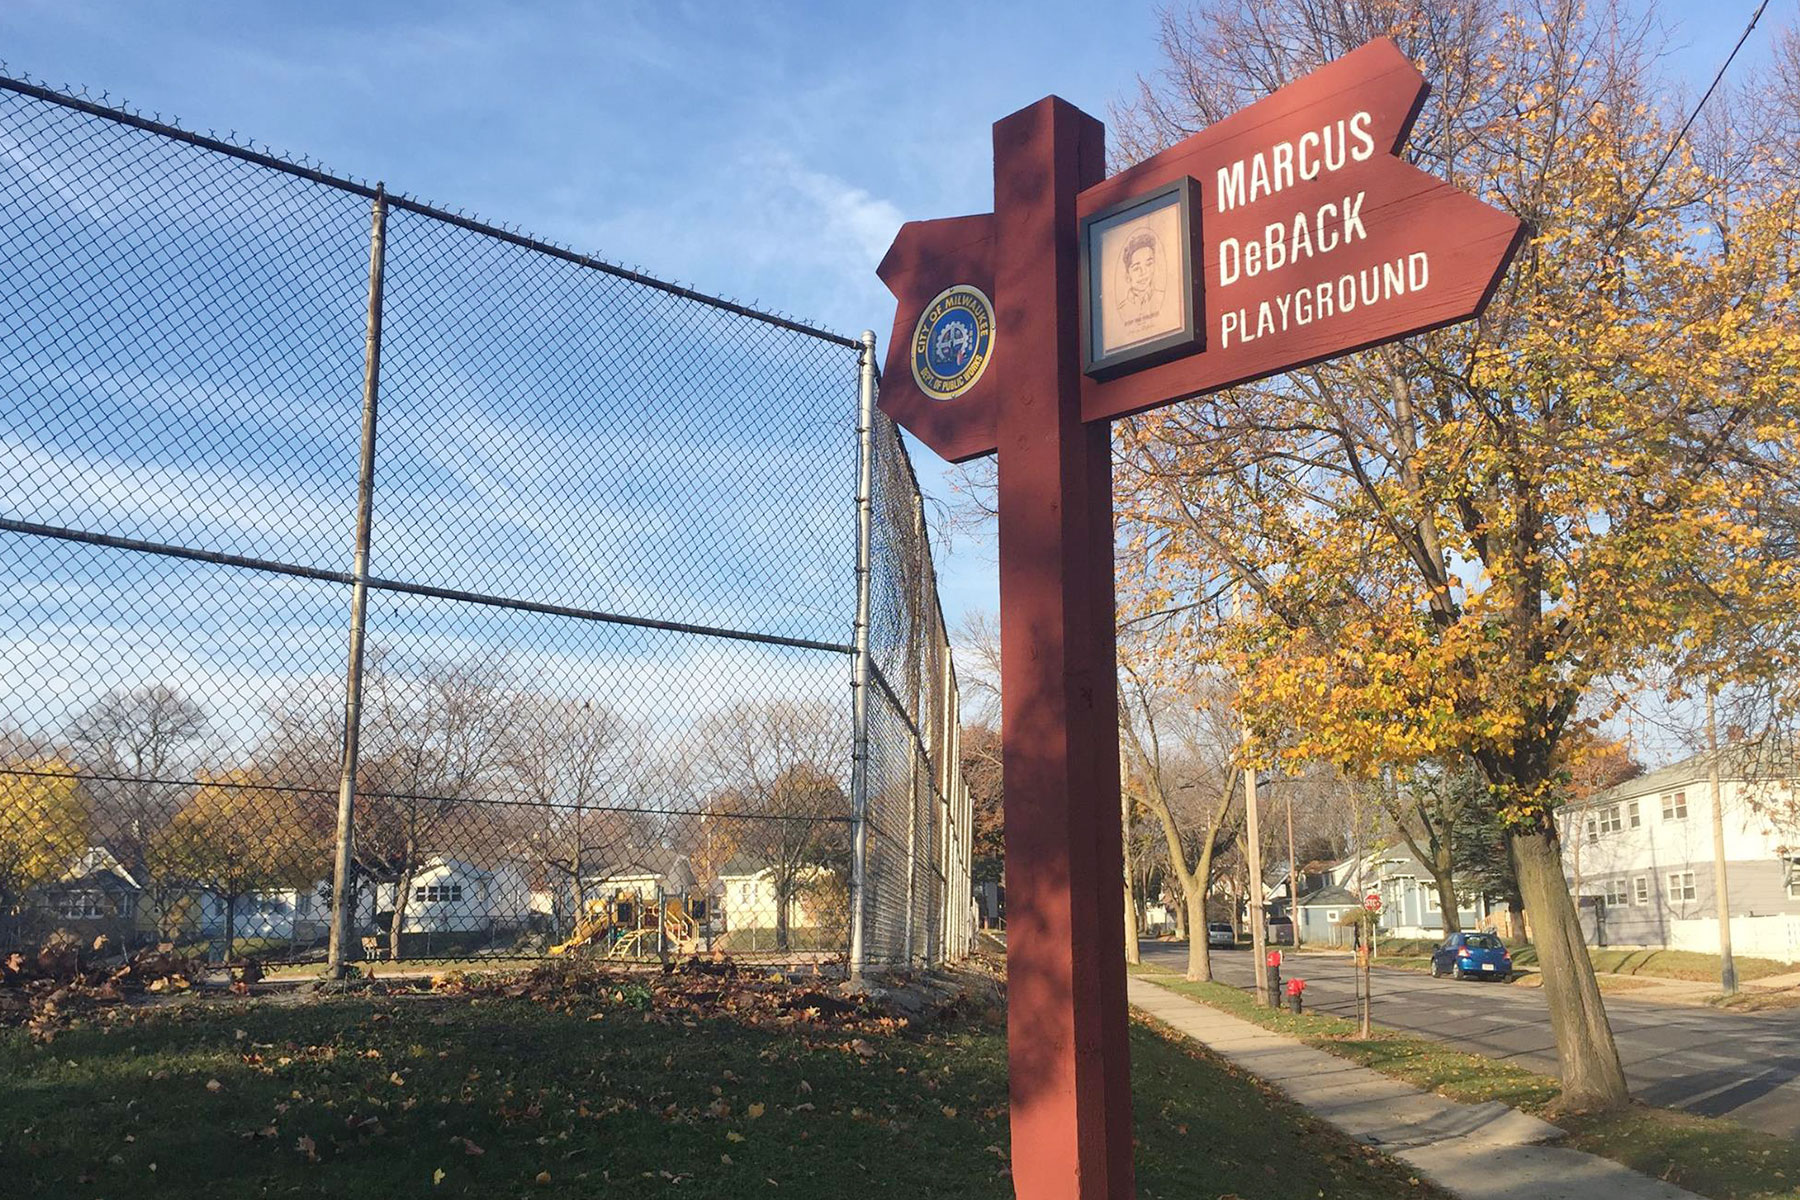 Rebirth Of Marcus Deback Playground Sparked By Loving Memories The Milwaukee Independent Marcus park is a park located in dallas, texas. the milwaukee independent